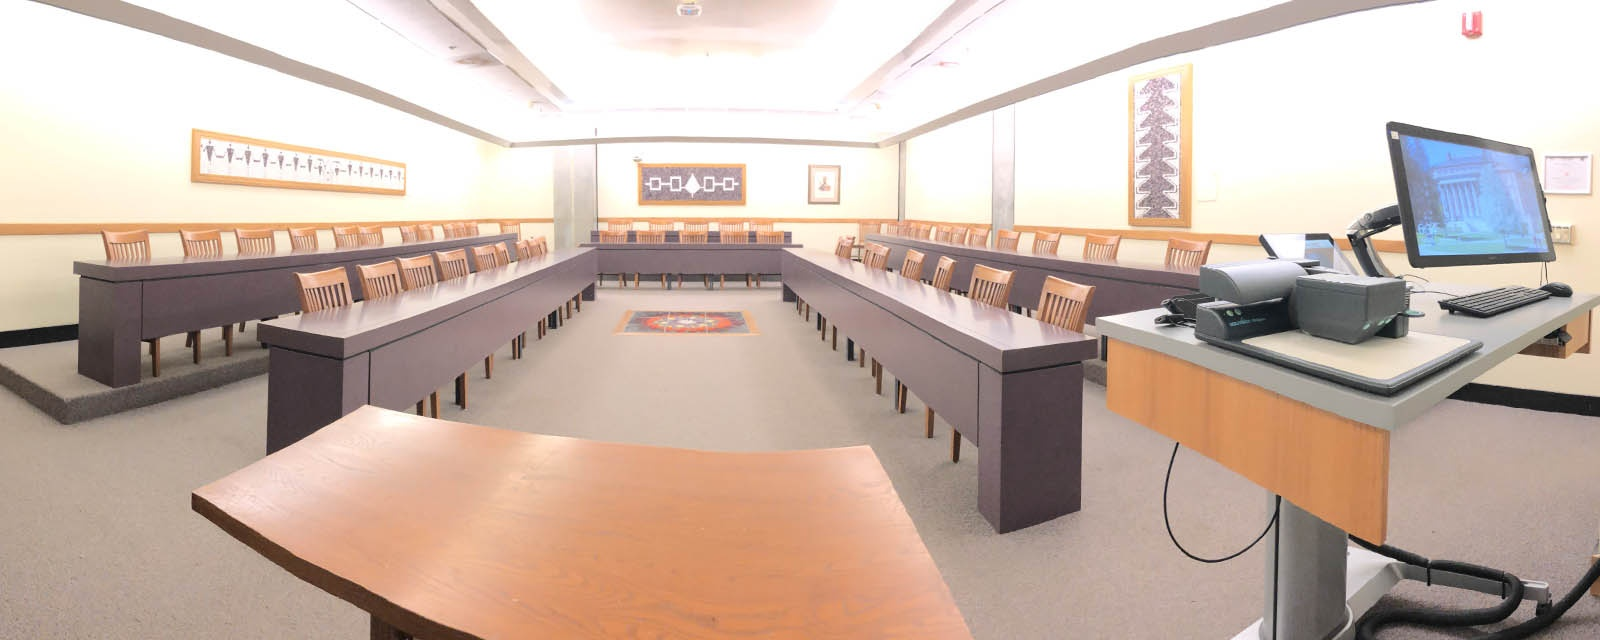 Panorama of Eggers 018 from front of room, chairs moveable on stationary desks, teaching station front right